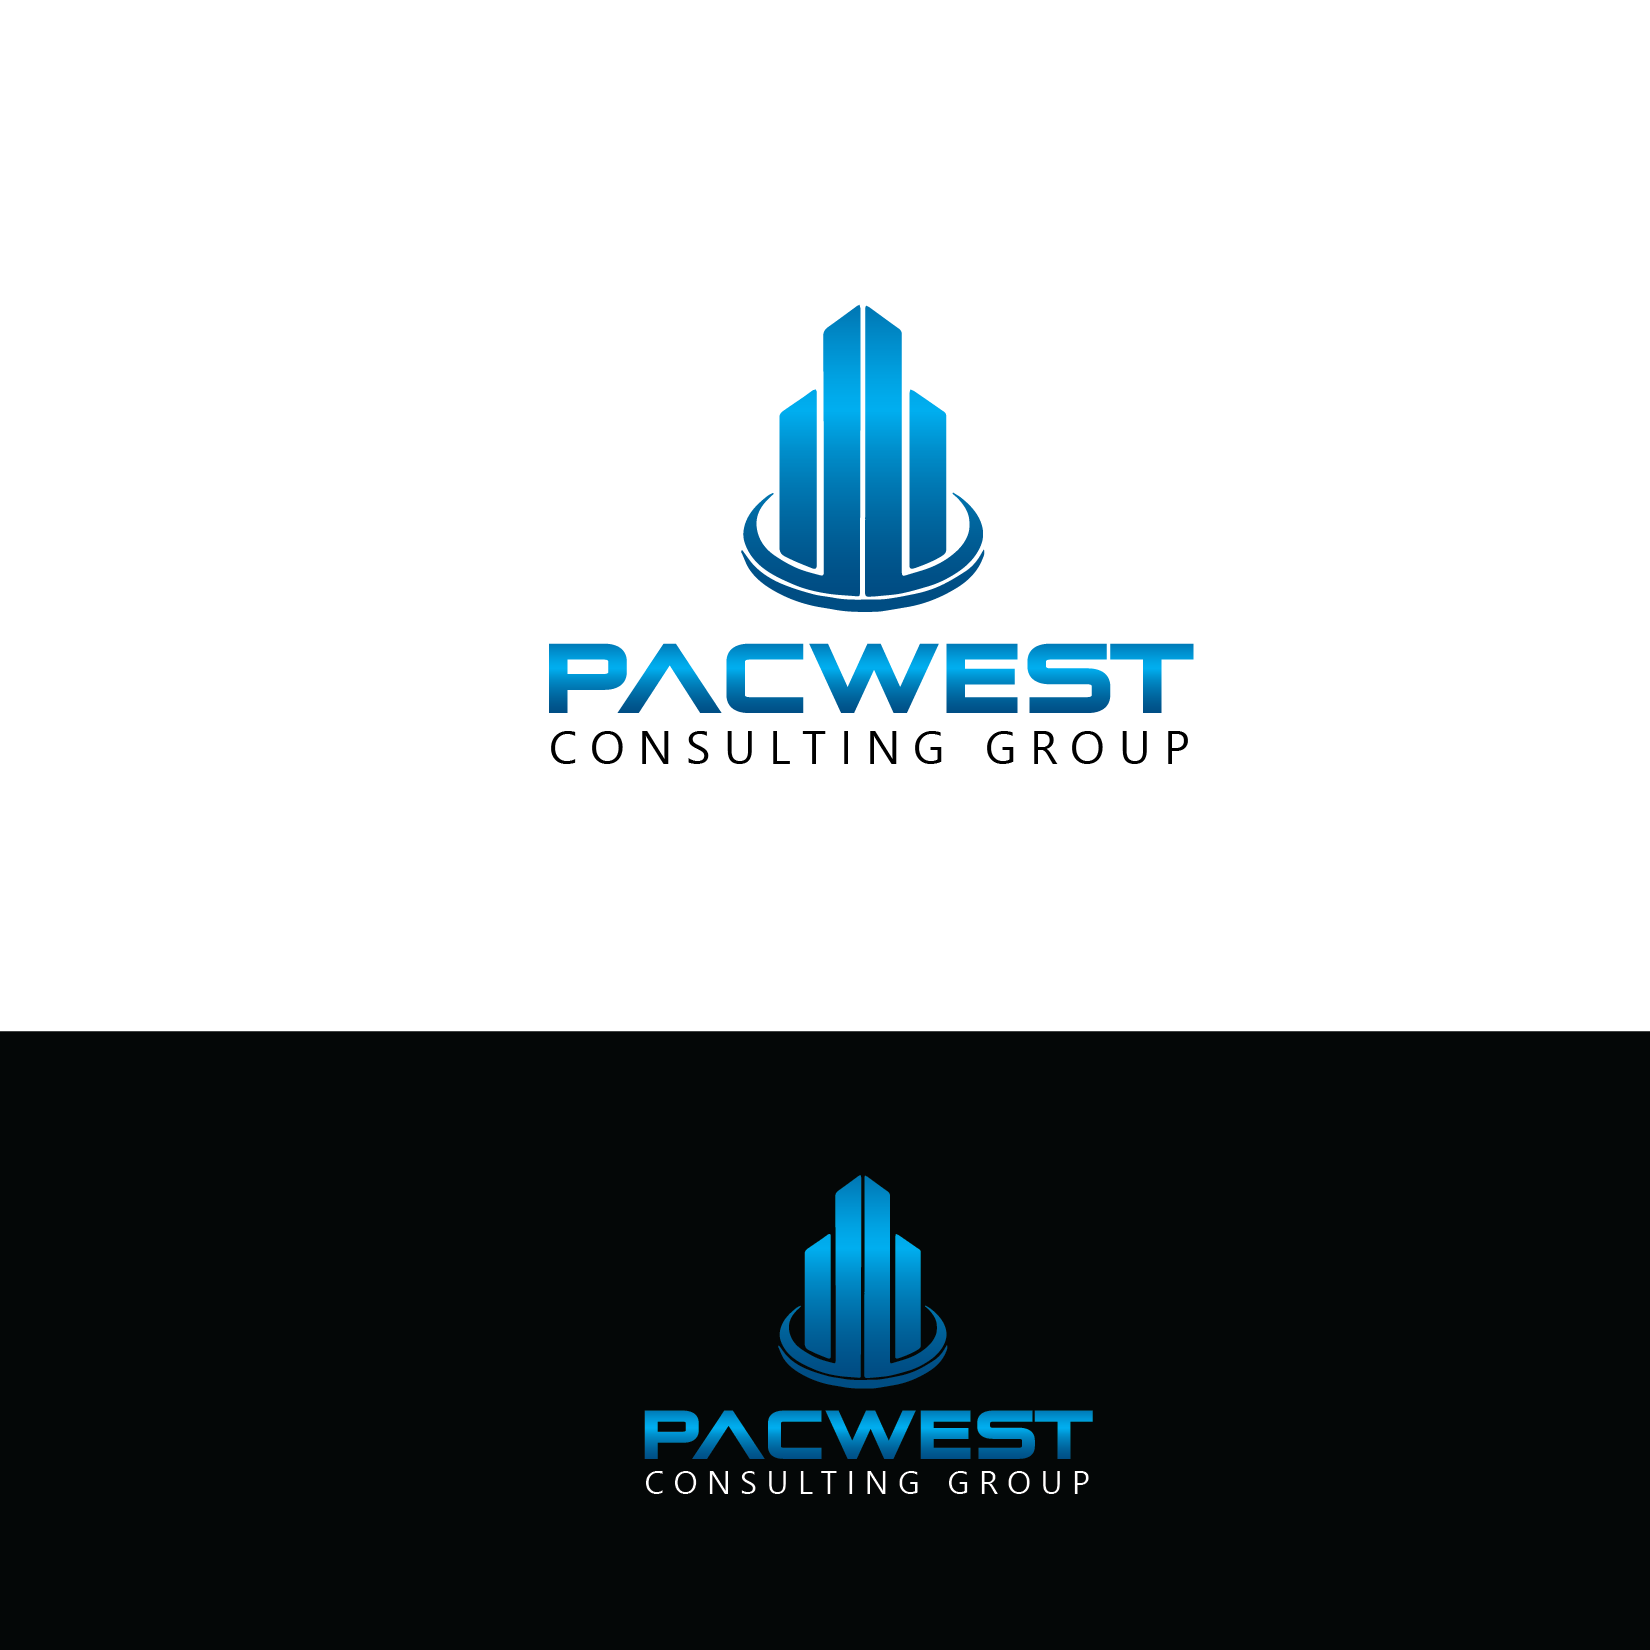 Logo Design by Private User - Entry No. 87 in the Logo Design Contest Imaginative Logo Design for Pacwest Consulting Group.